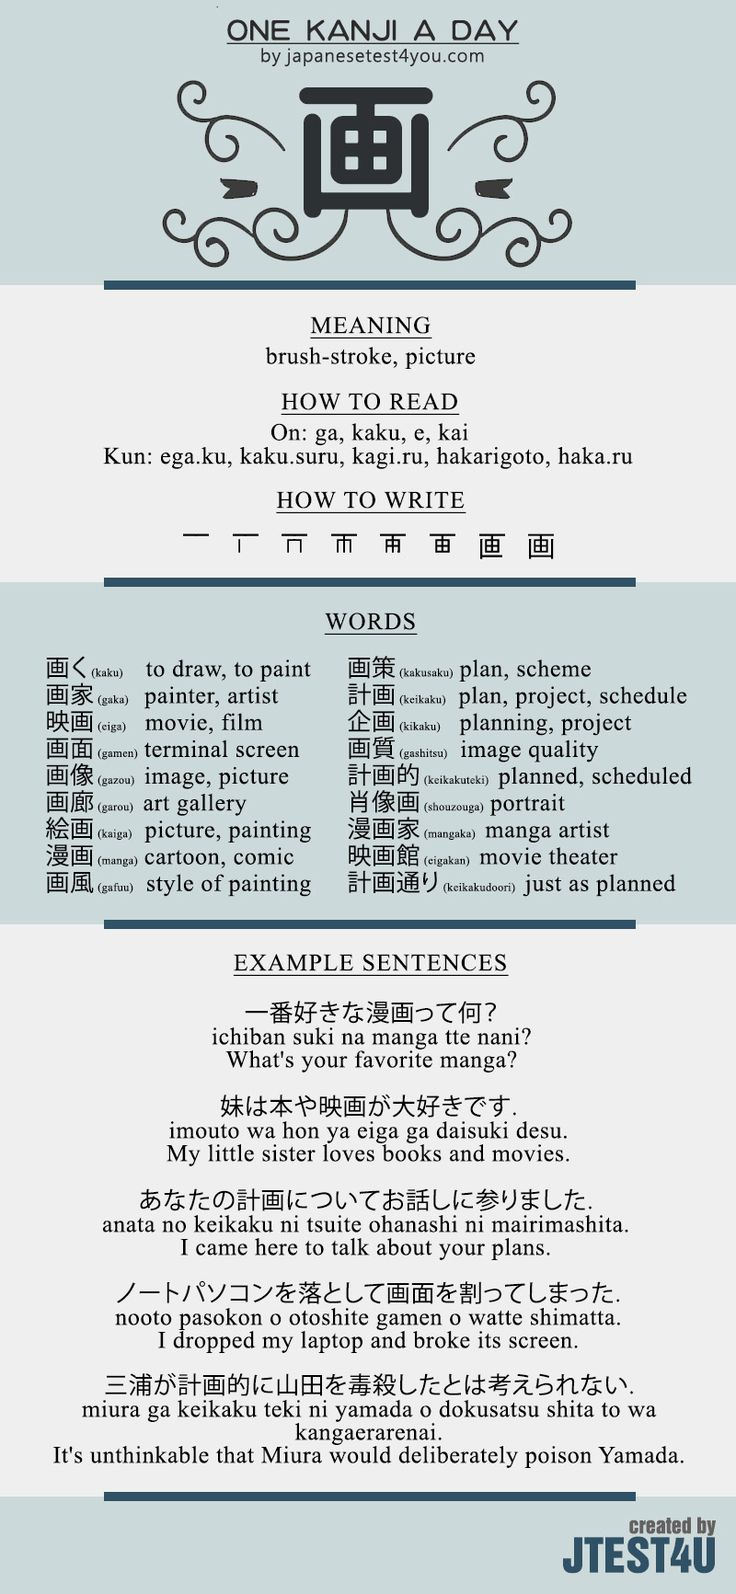 Learn one Kanji a day with infographic - 画 (ga): http://japanesetest4you.com/learn-one-kanji-a-day-with-infographic-%e7%94%bb-ga/